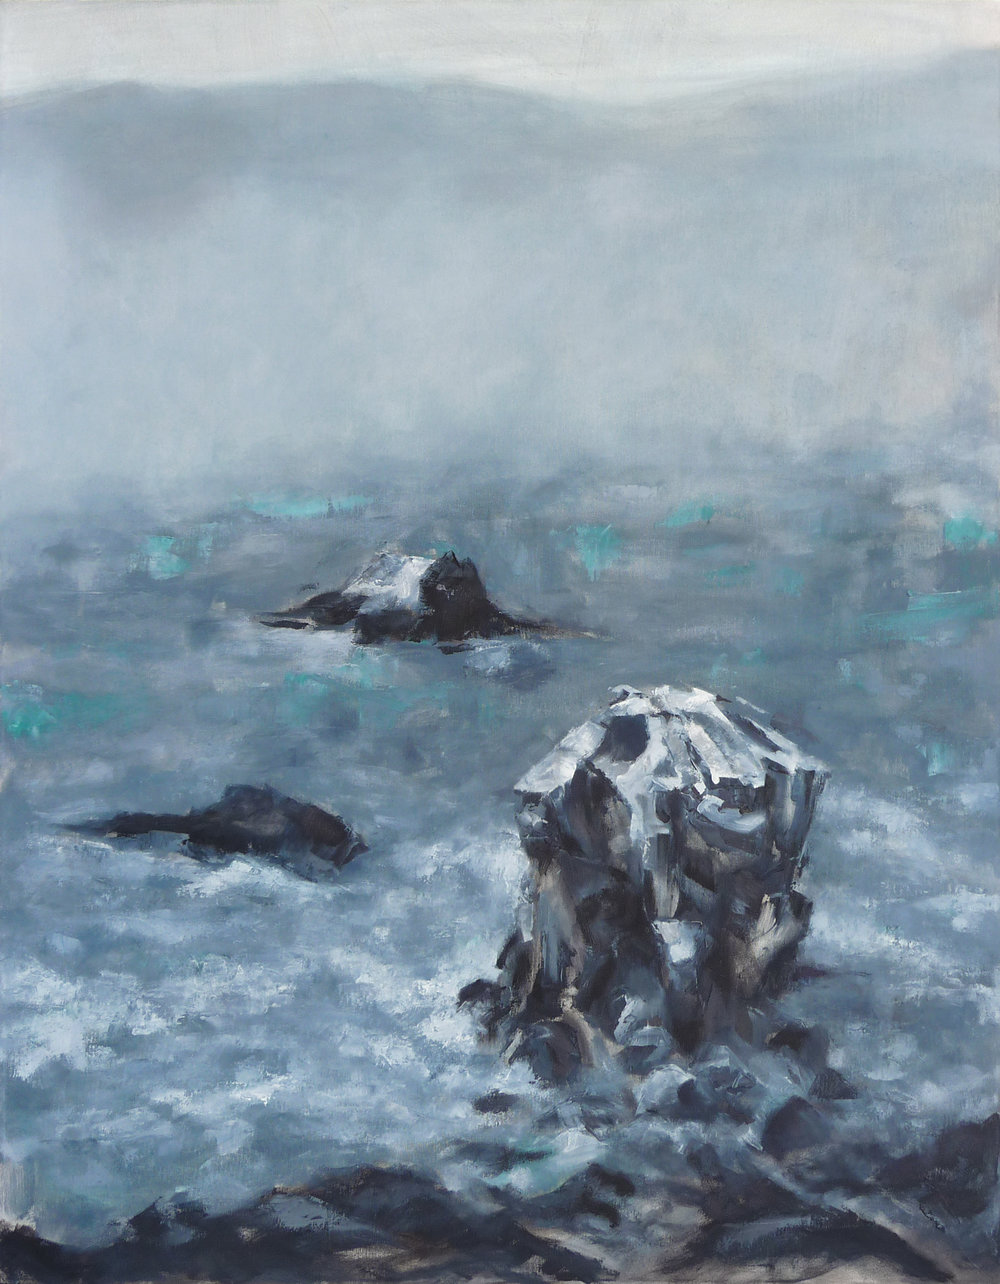 View from Land's End  , 2016. Oil on canvas. 46 x 36 inches (116.8 x 91.4 cm)